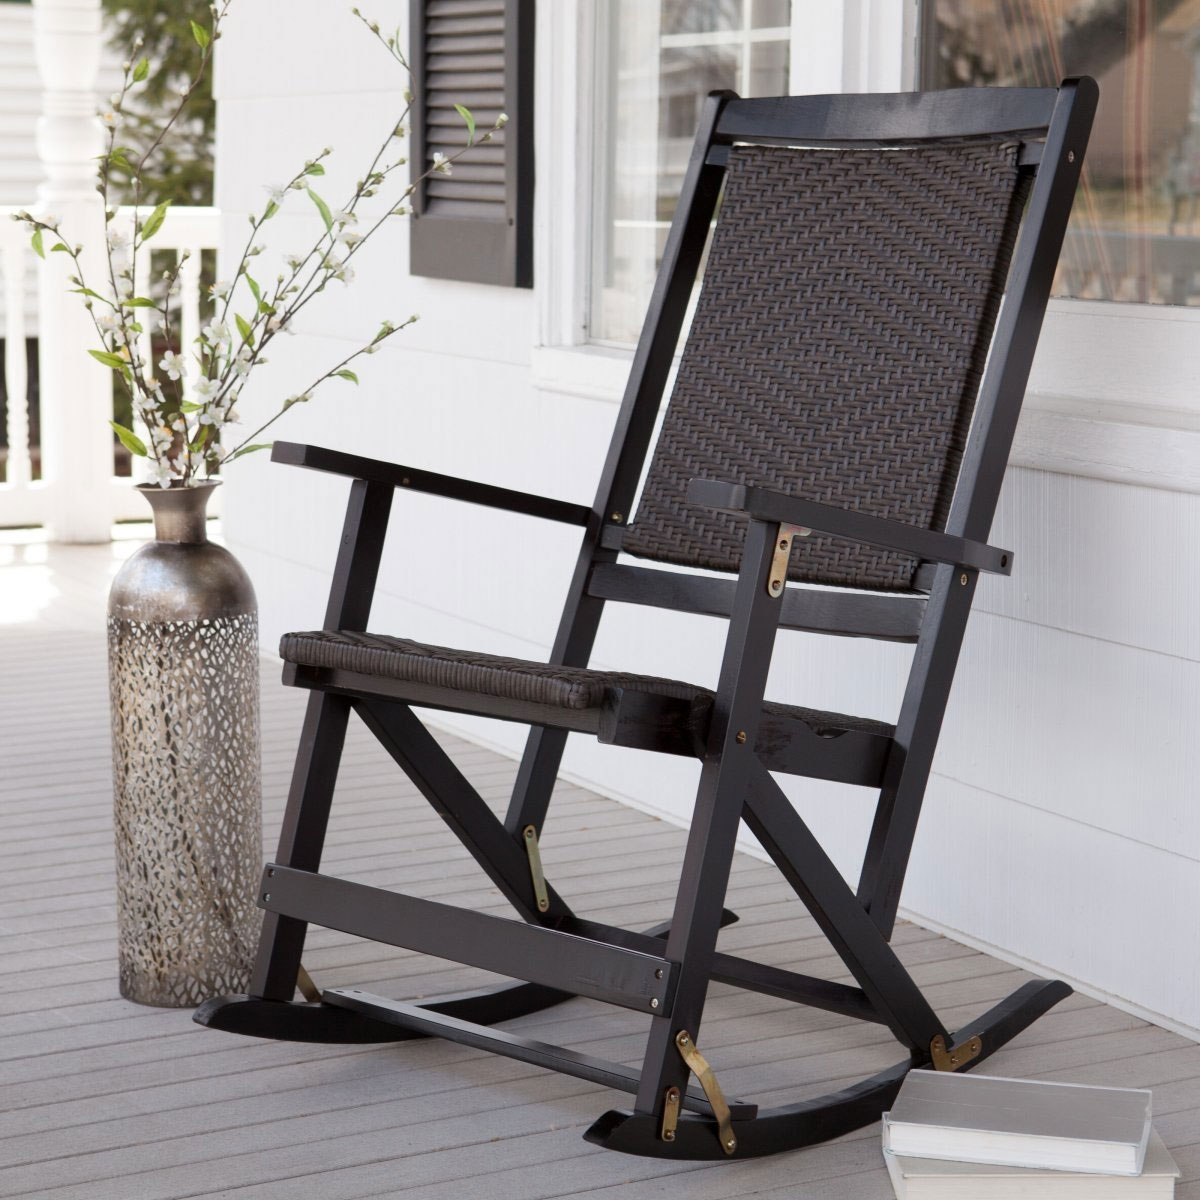 Outdoor Metal Rocking Chair Modern Chairs Quality Interior Lawn Regarding Outdoor Patio Metal Rocking Chairs (View 10 of 15)